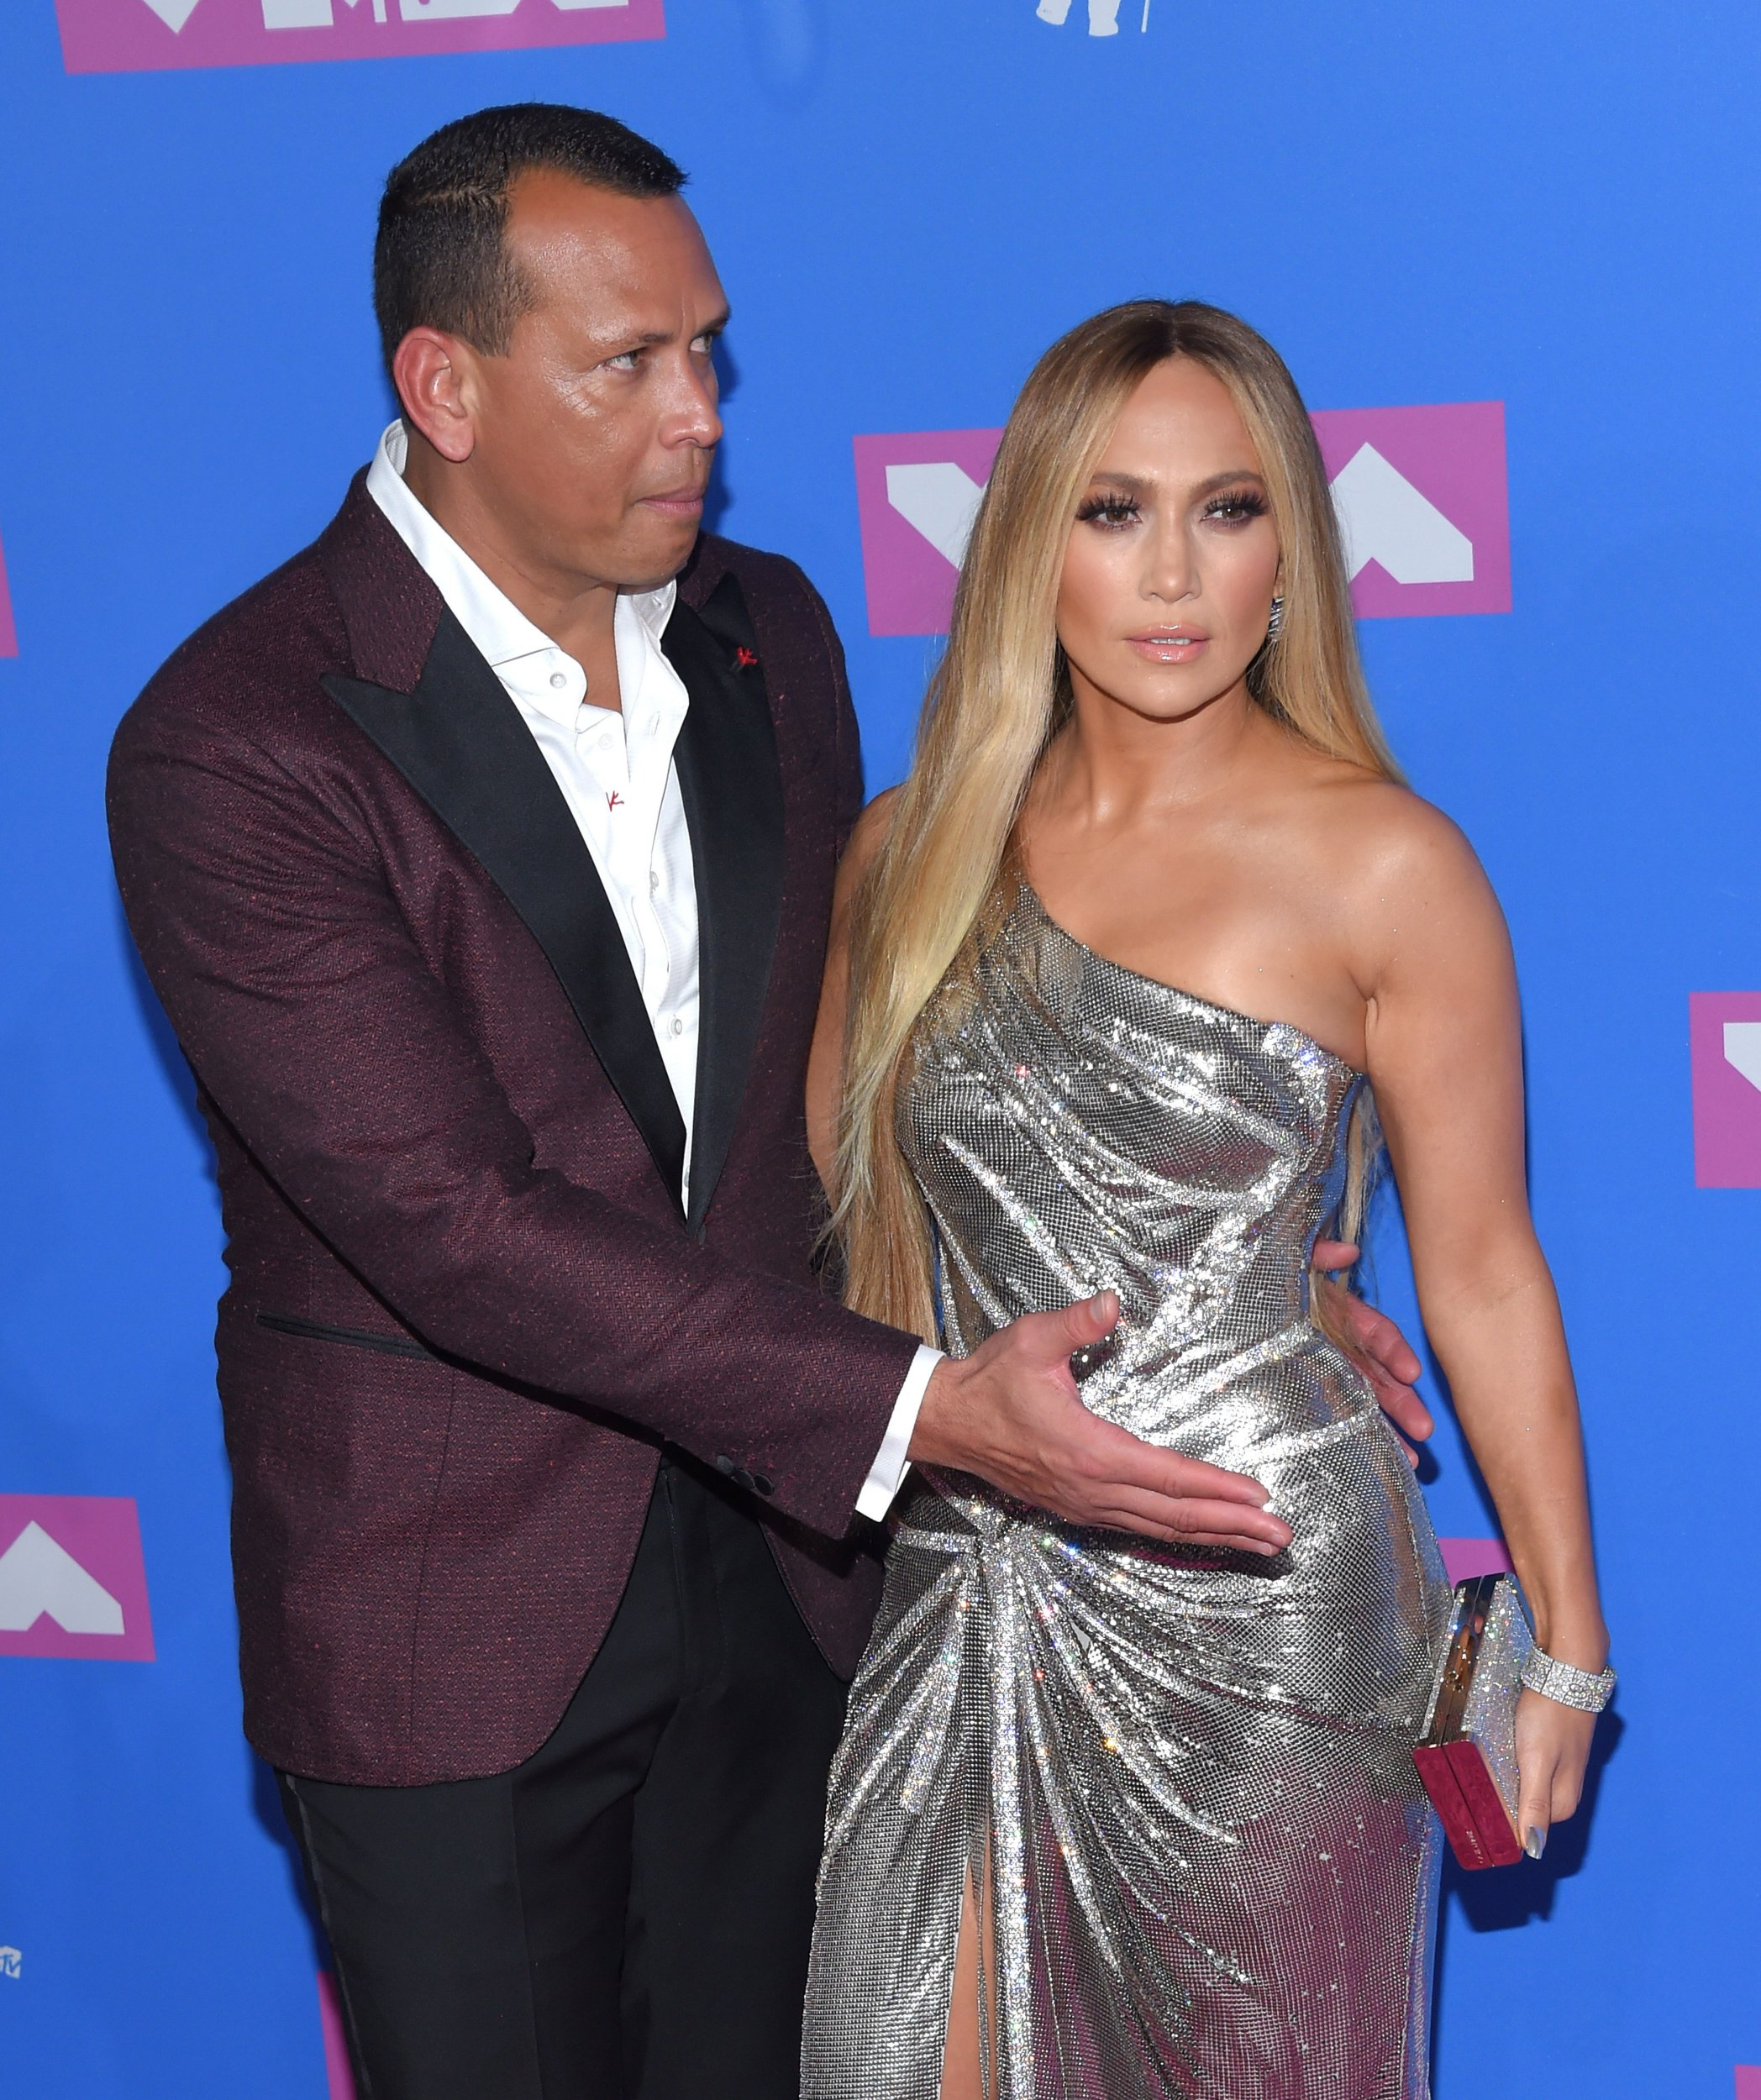 "Kylie Jenner at the 2018 MTV ""VMAs'"" held at Radio City Music Hall on August 20, 2018 in New York City, NY ?? OConnor / AFF-USA.com. 20 Aug 2018 Pictured: Alex Rodriguez and Jennifer Lopez. Photo credit: MEGA TheMegaAgency.com +1 888 505 6342"